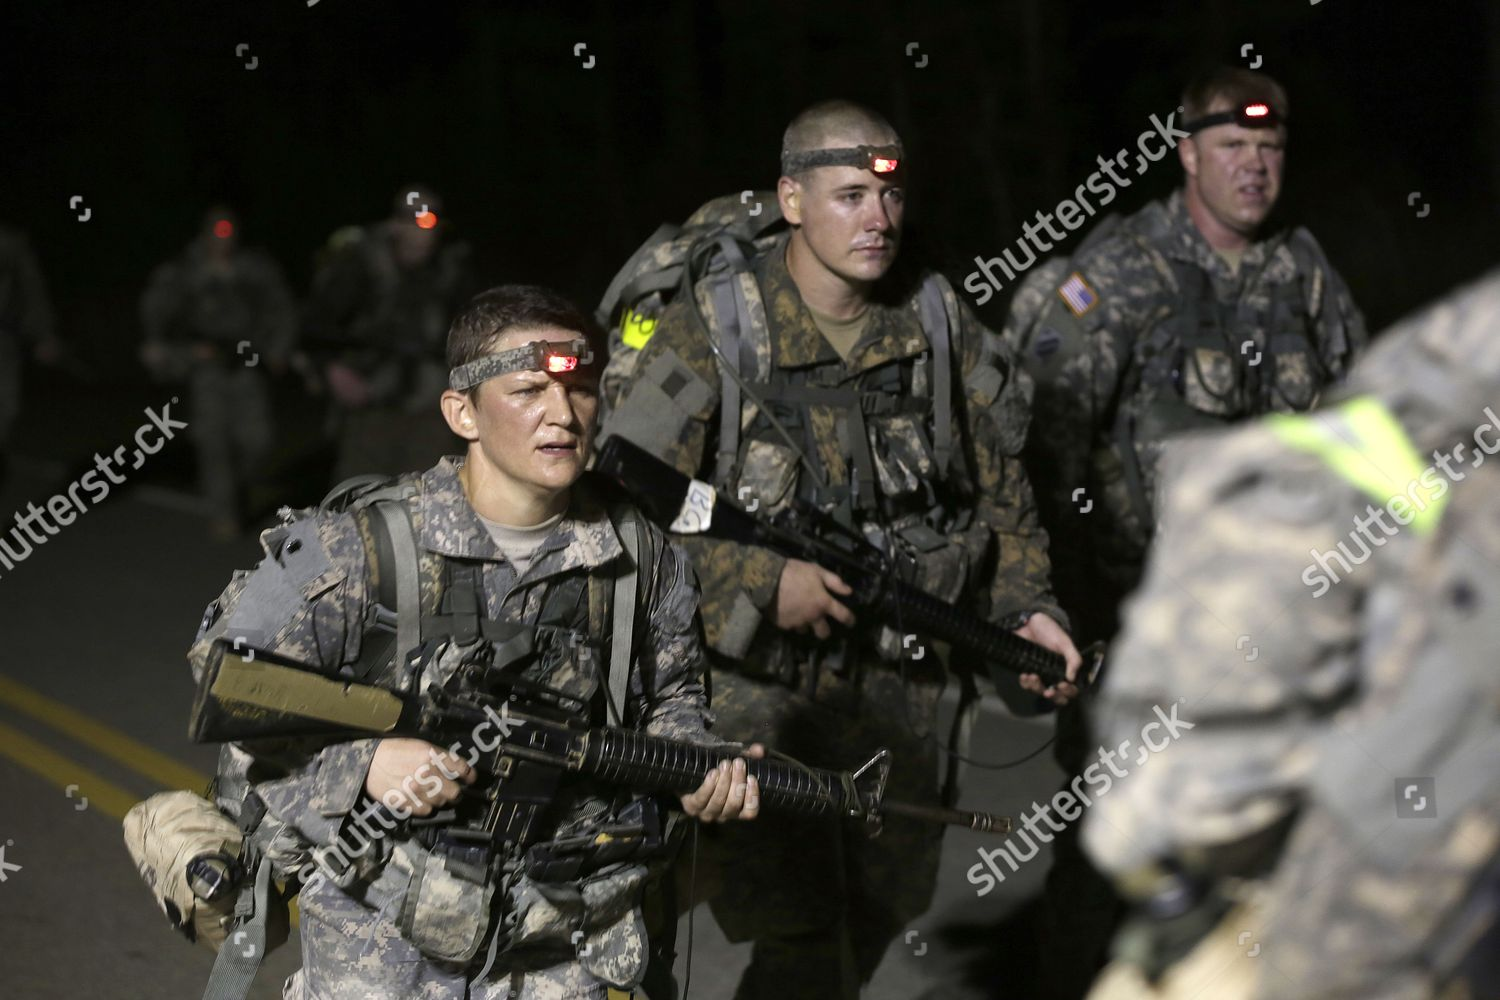 Female soldiers have complete same training requirements